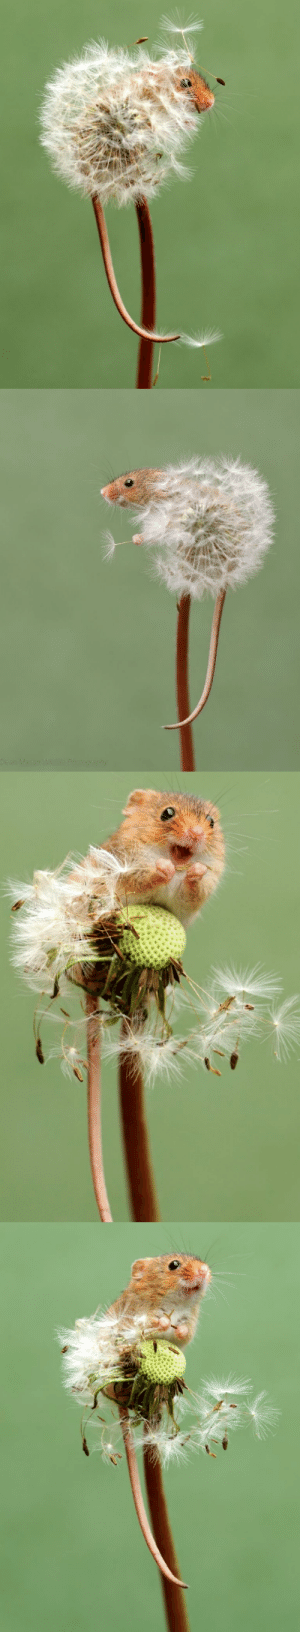 Target, Tumblr, and Blog: Dean Mason Wildle Photography inkwingart:  salemwitchtrials: Harvest mouse on a dandelion by Dean Mason @spaceshipkat look at this TINY FRIEND